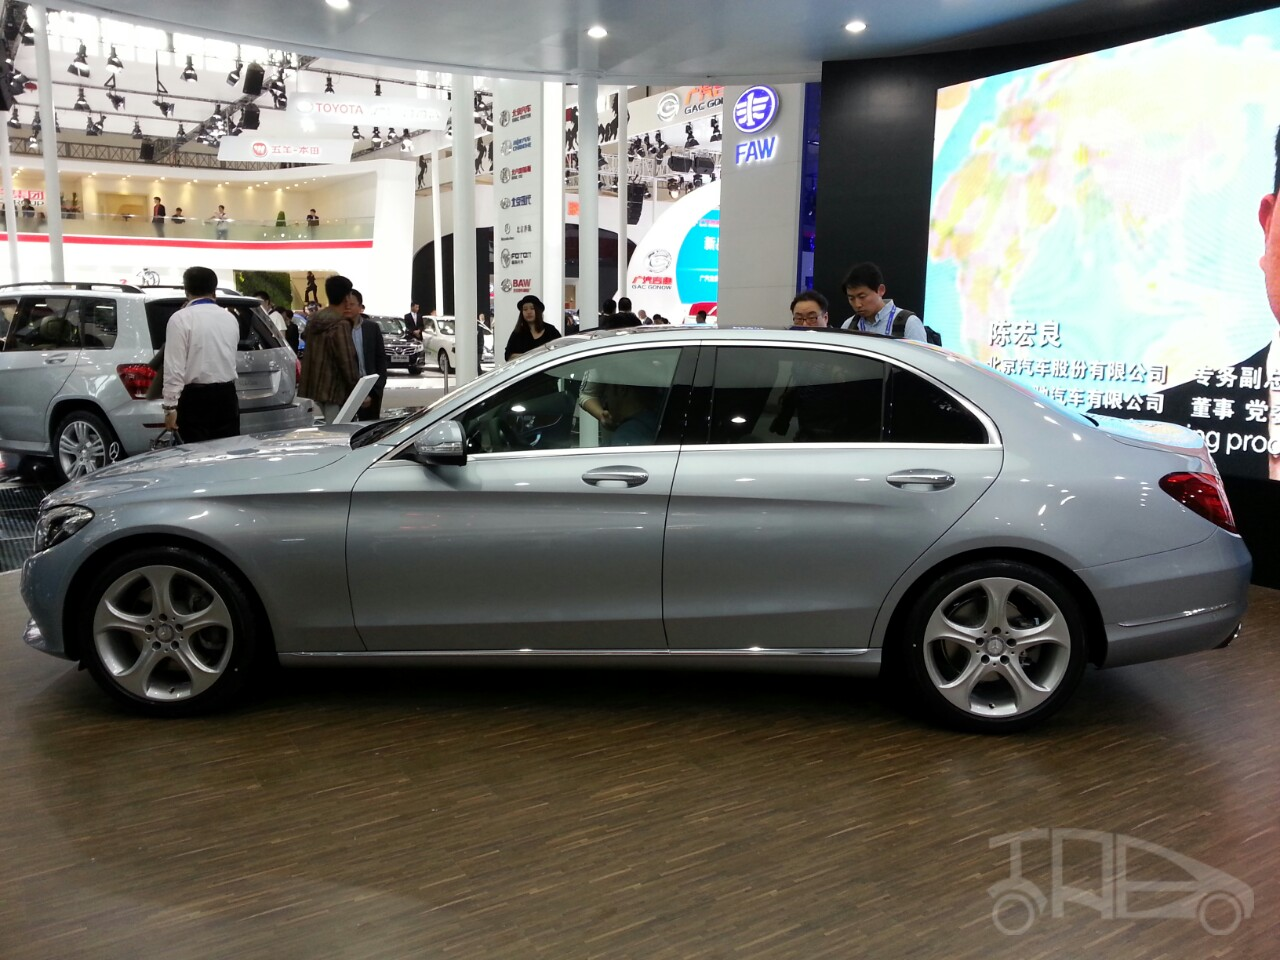 2015 Mercedes C Class Lwb Model Launched In 2014 Beijing